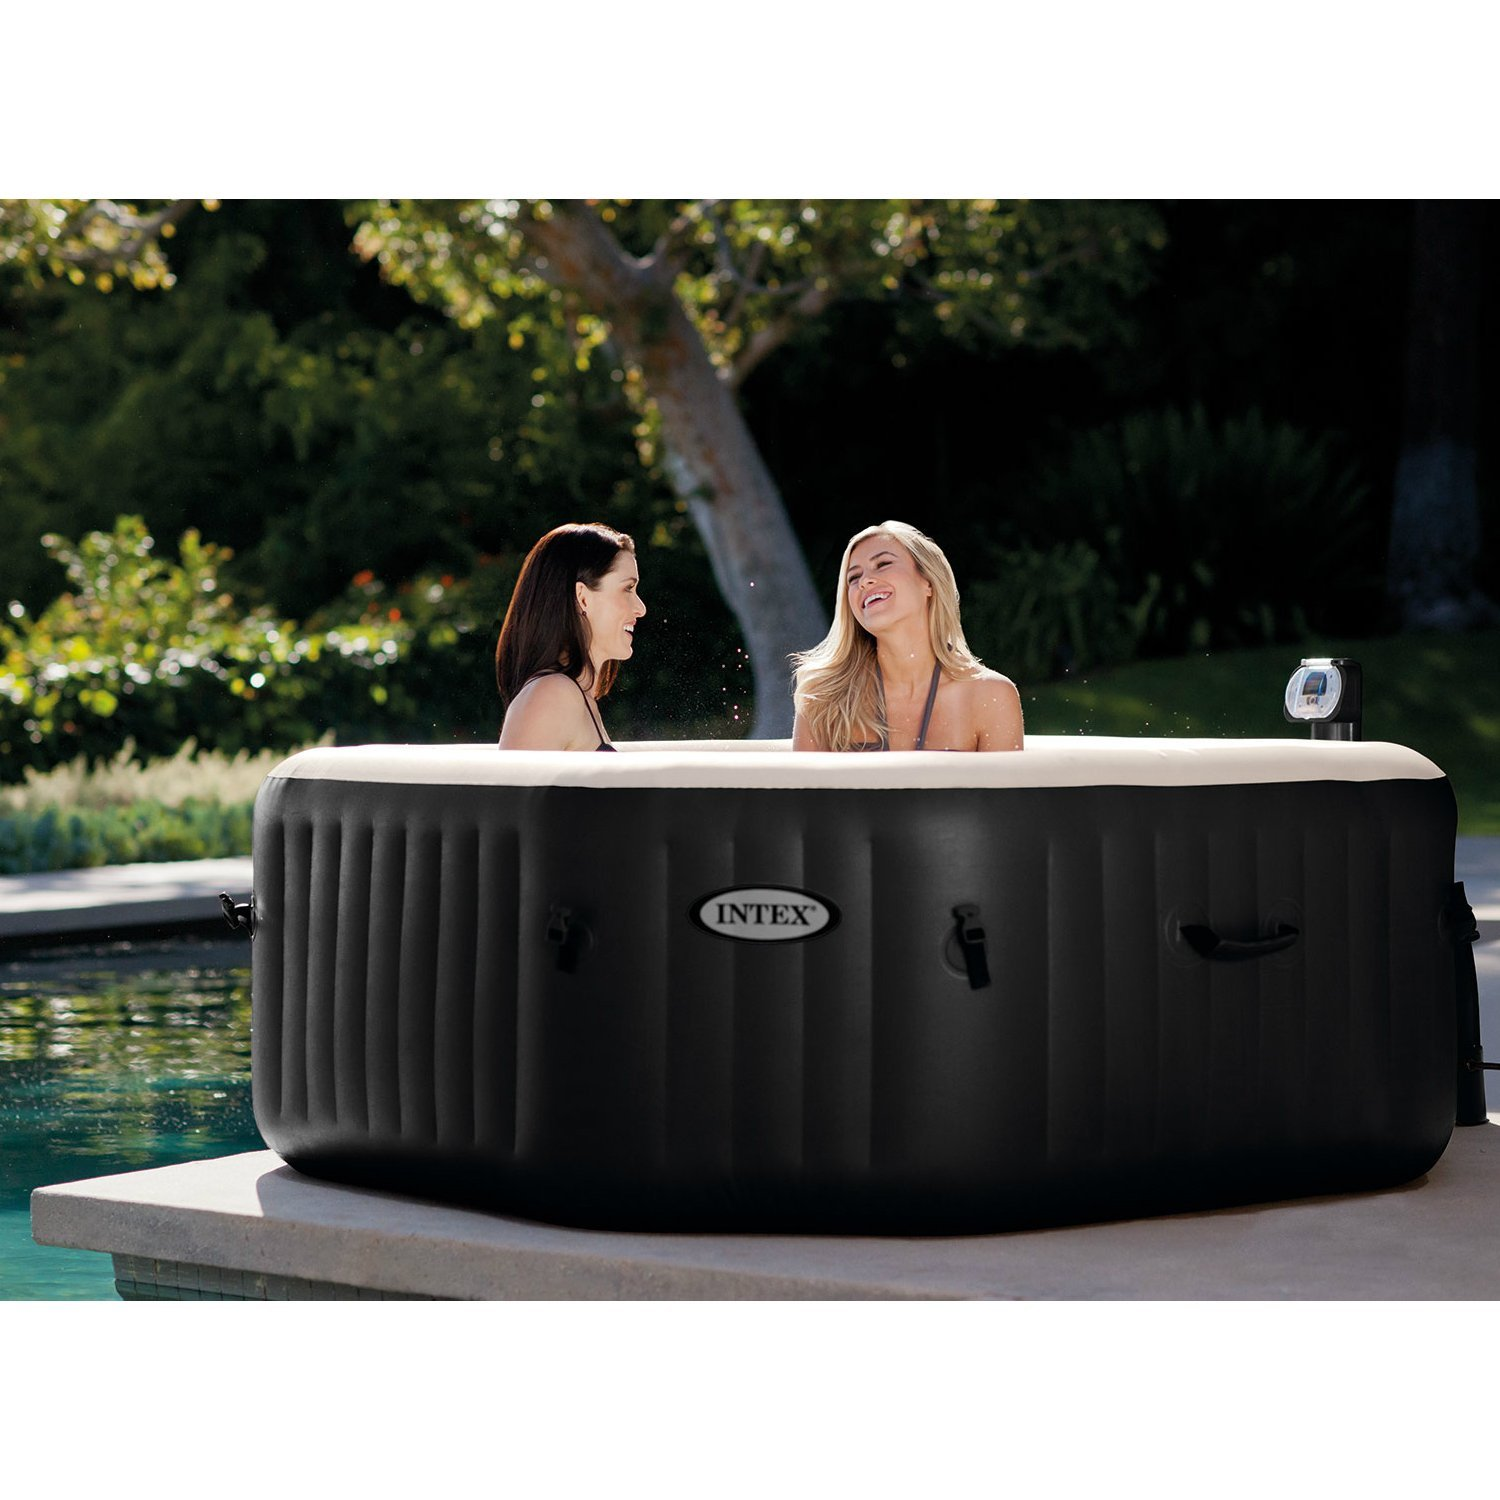 Intex Purespa Jet Massage A Luxury Spa Experience For The Masses